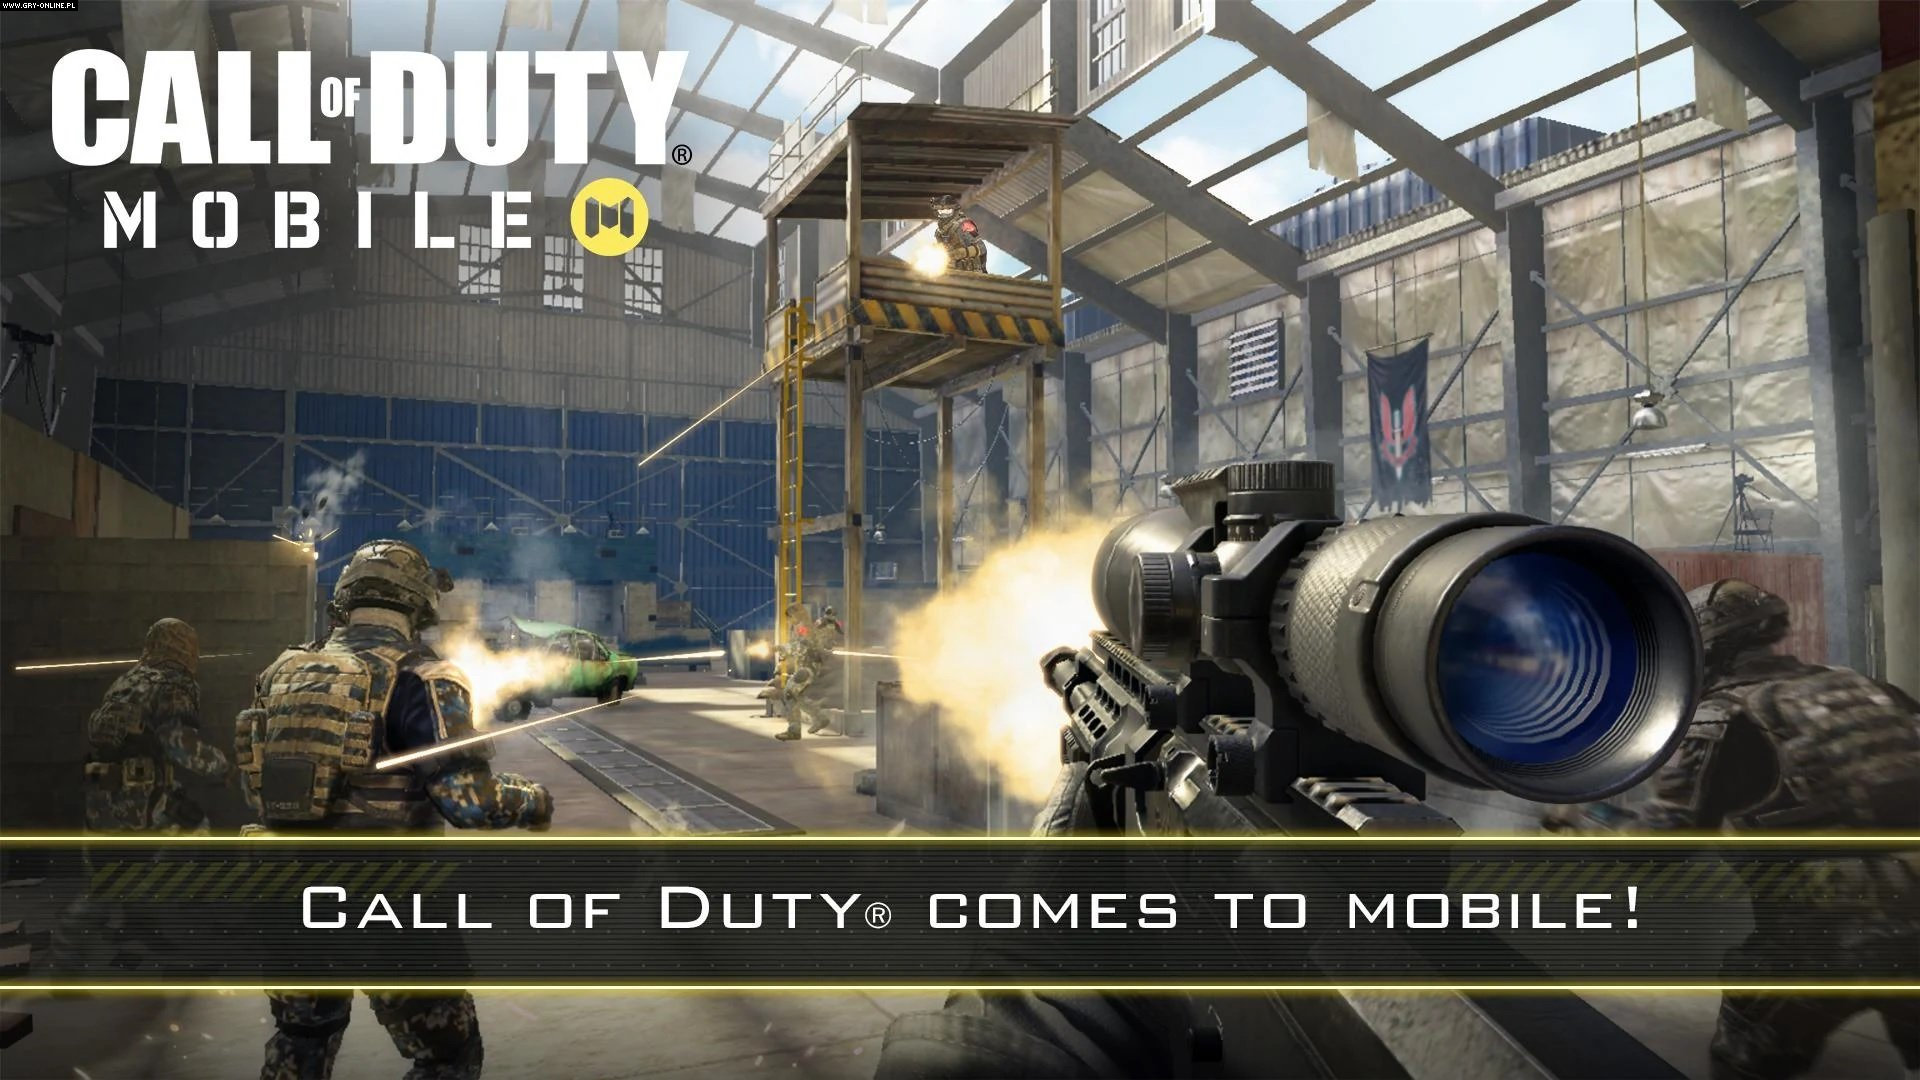 Call of Duty: Mobile iOS, AND Games Image 5/5, Tencent, Activision Blizzard